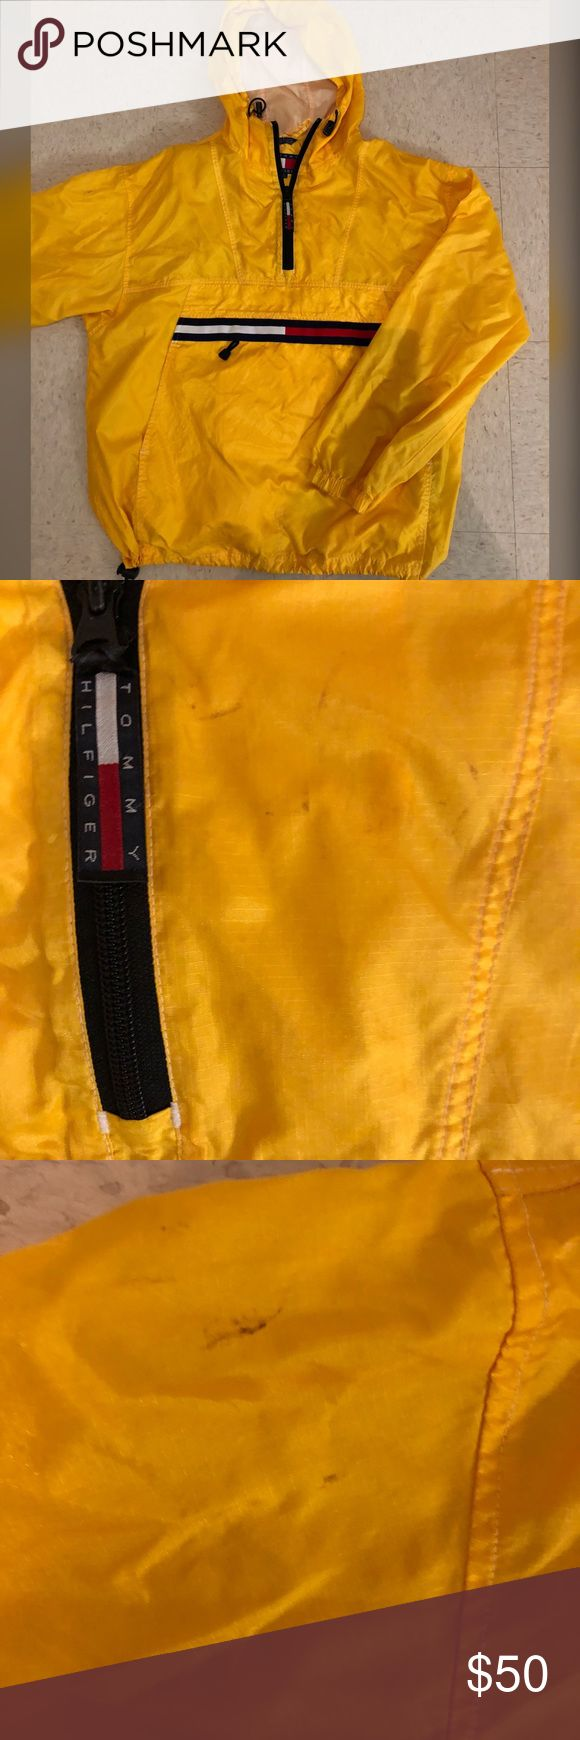 Vintage Tommy Hilfiger rain jacket In good condition has a couple slight stains on it shown in pictures but hardly noticeable when being worn. Haven't tried to hard to get them out but it's priced due to the stains so if you get it out yourself it's basically a steal. Tommy Hilfiger Jackets & Coats Raincoats